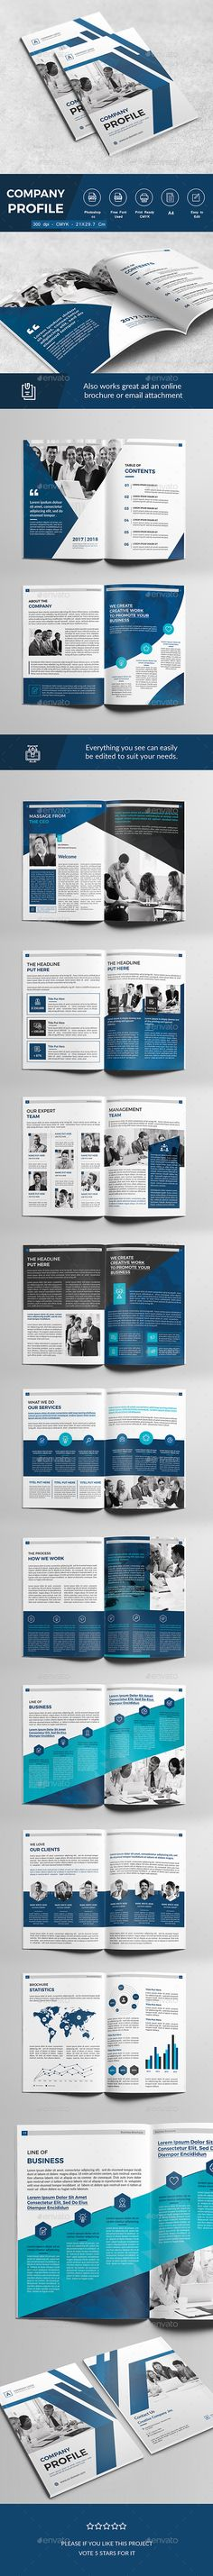 Company Profile Template InDesign INDD Company Profile Design - company profile templates word